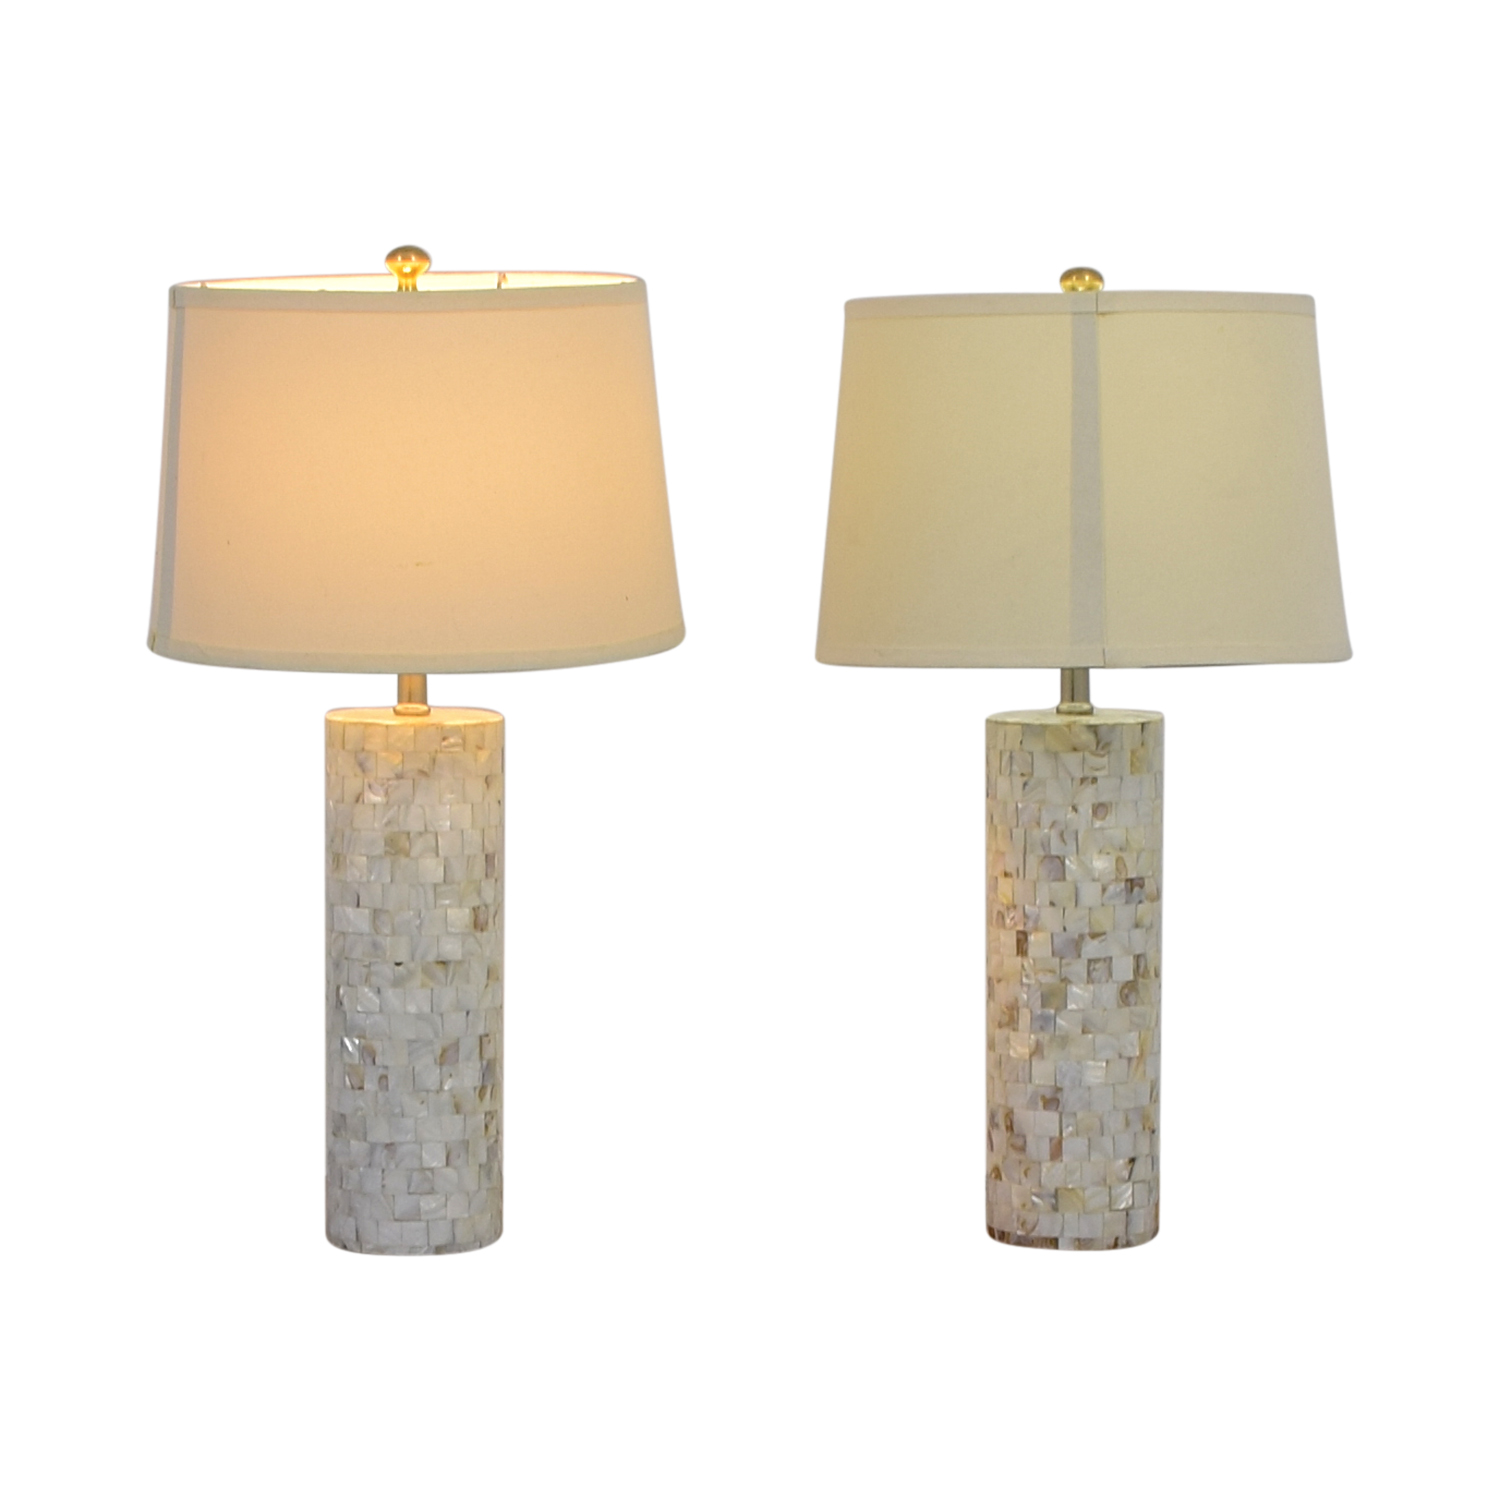 Mother of Pearl Table Lamps for sale